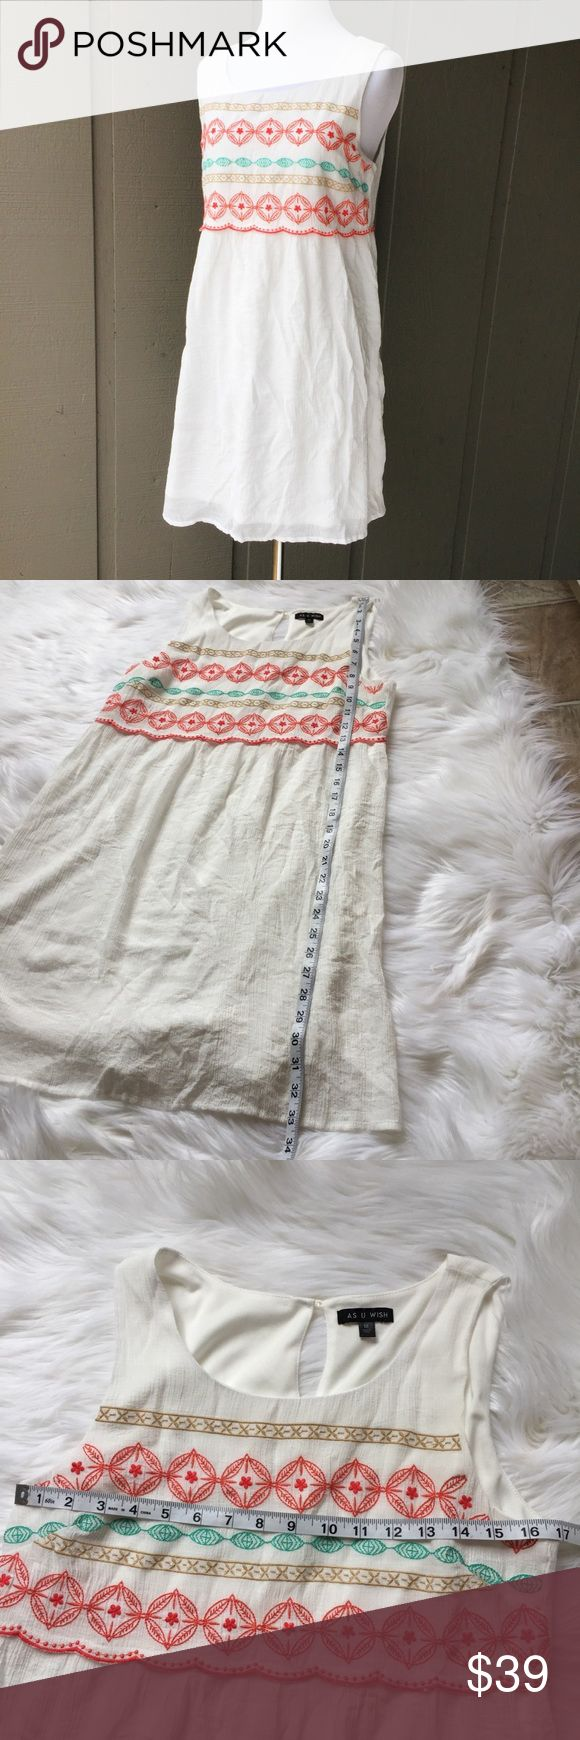 "As U Wish White Aztec Short Tank Sleeve Mini Dress Measurements: Length: 33"" and Chest: 33"" Material: Self: 60% Rayon and 40% polyester, Lining: 100% Polyester Condition: Excellent! As U Wish Dresses Mini"